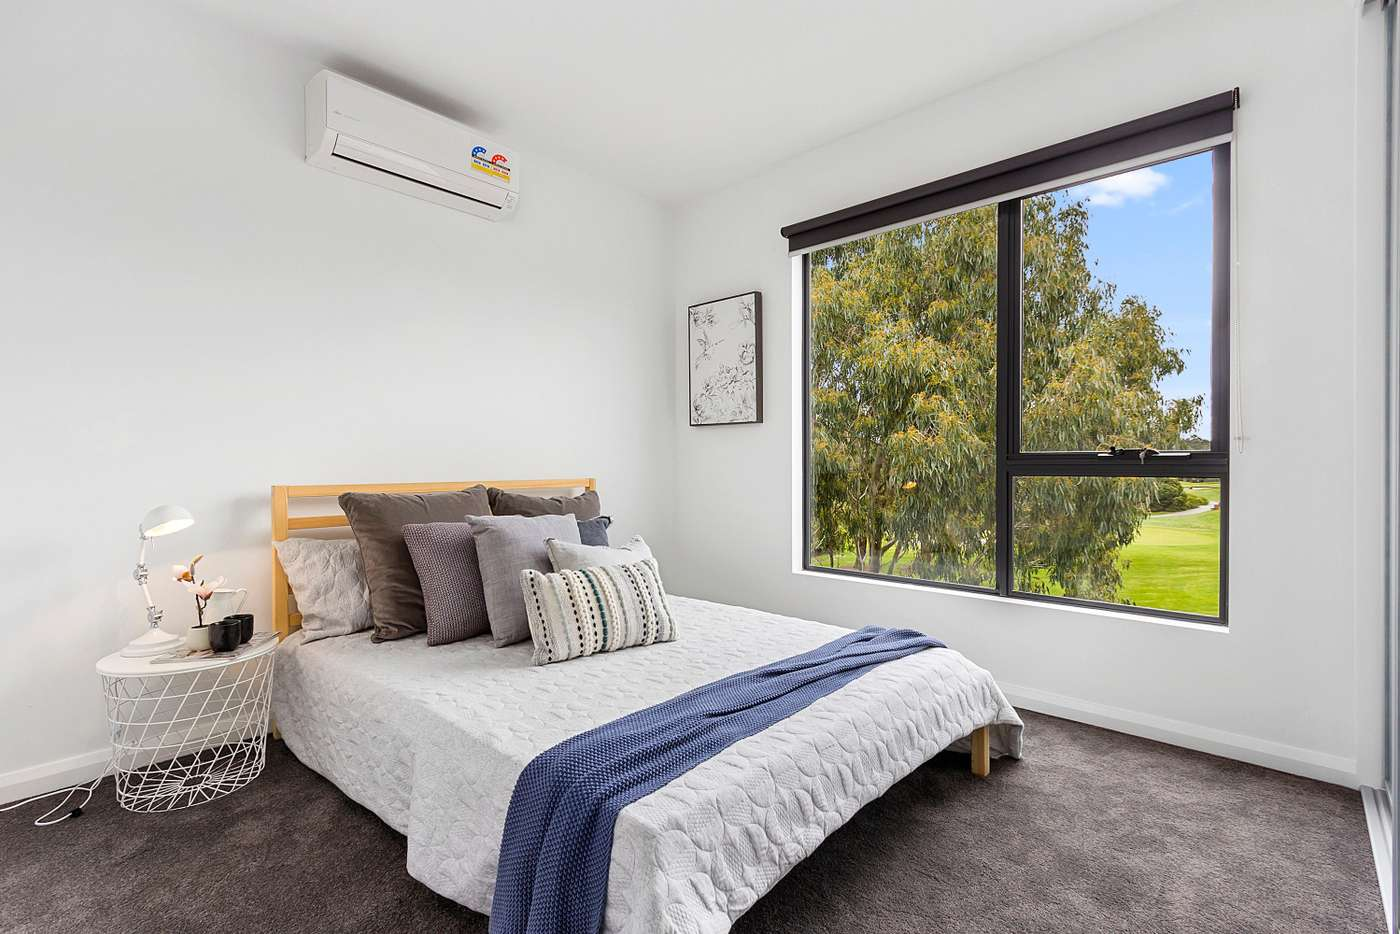 Sixth view of Homely townhouse listing, 4/256 Wantirna Road, Wantirna VIC 3152